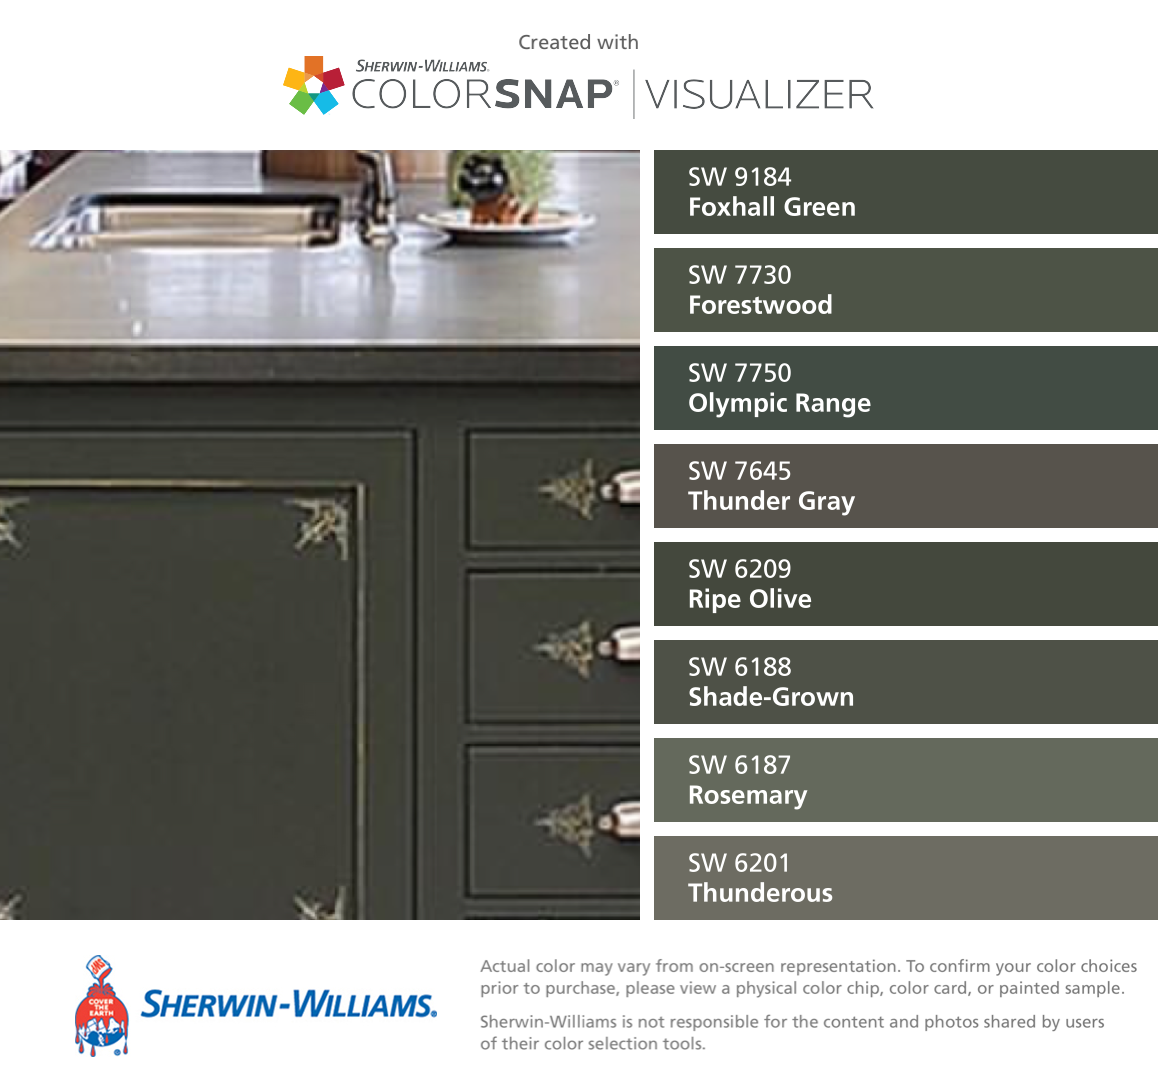 I found these colors with colorsnap visualizer for iphone by sherwin williams foxhall green sw 9184 forestwood sw 7730 olympic range sw 7750